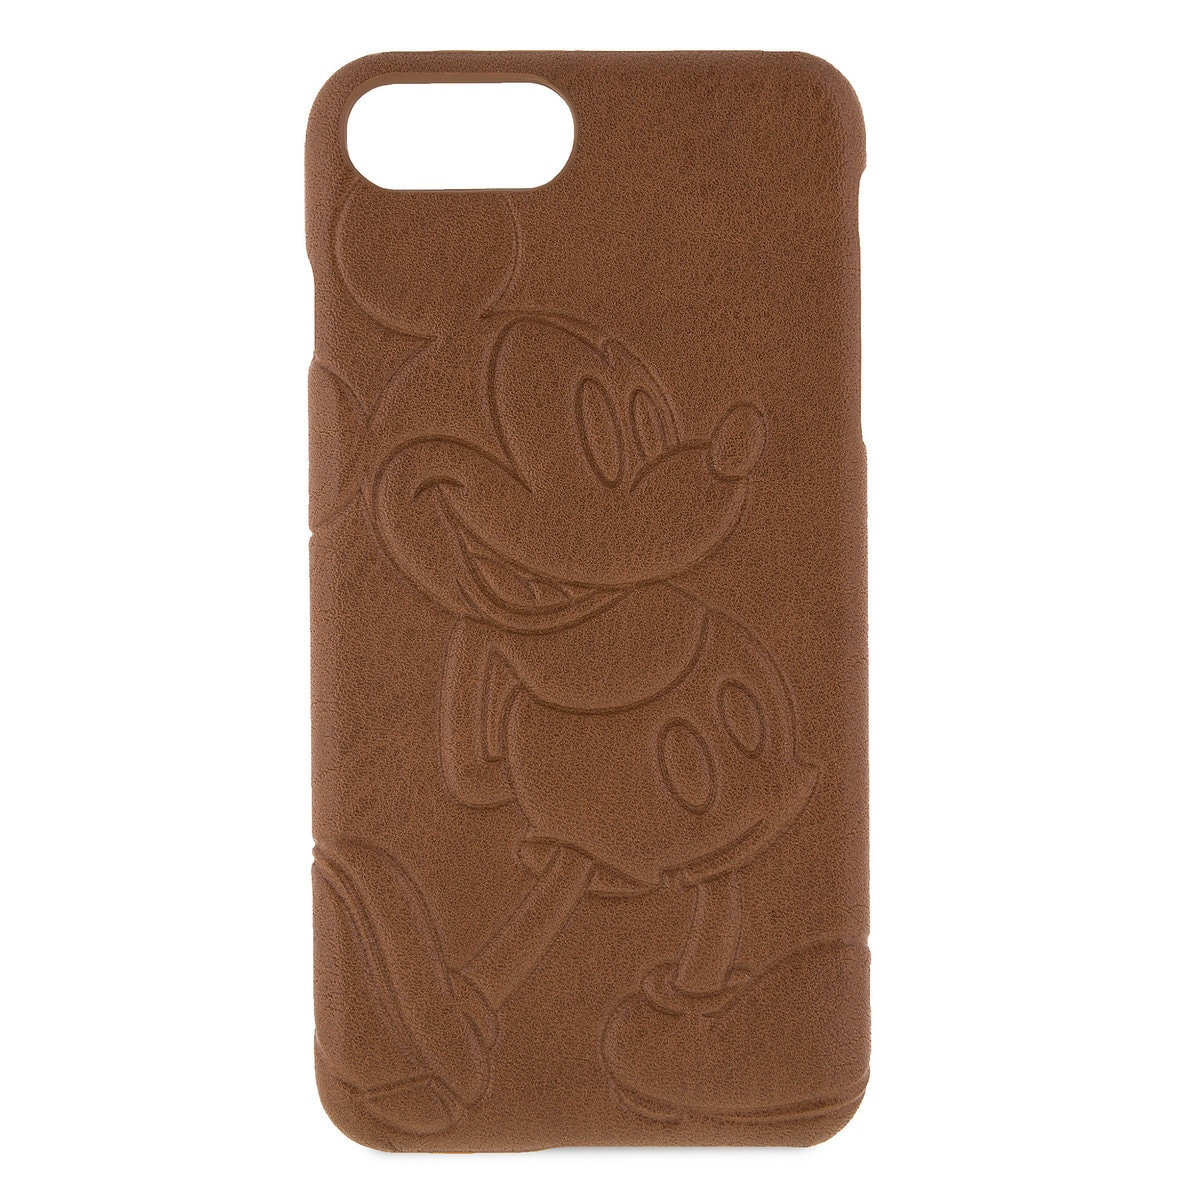 best service 4fbf0 4984e Mickey Mouse Leather iPhone 7/6 Plus Case